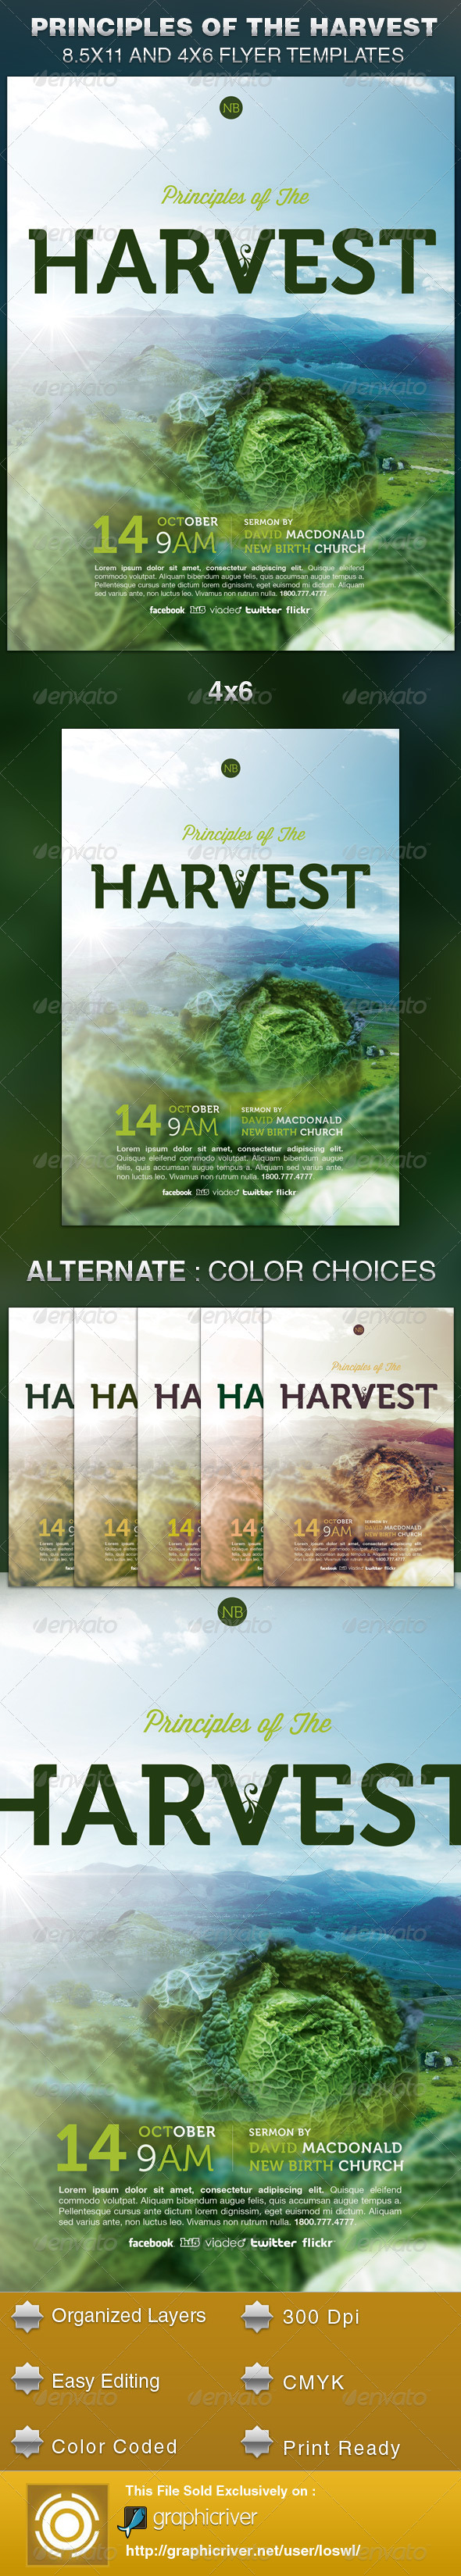 Principles of the Harvest Church Flyer Template - Church Flyers